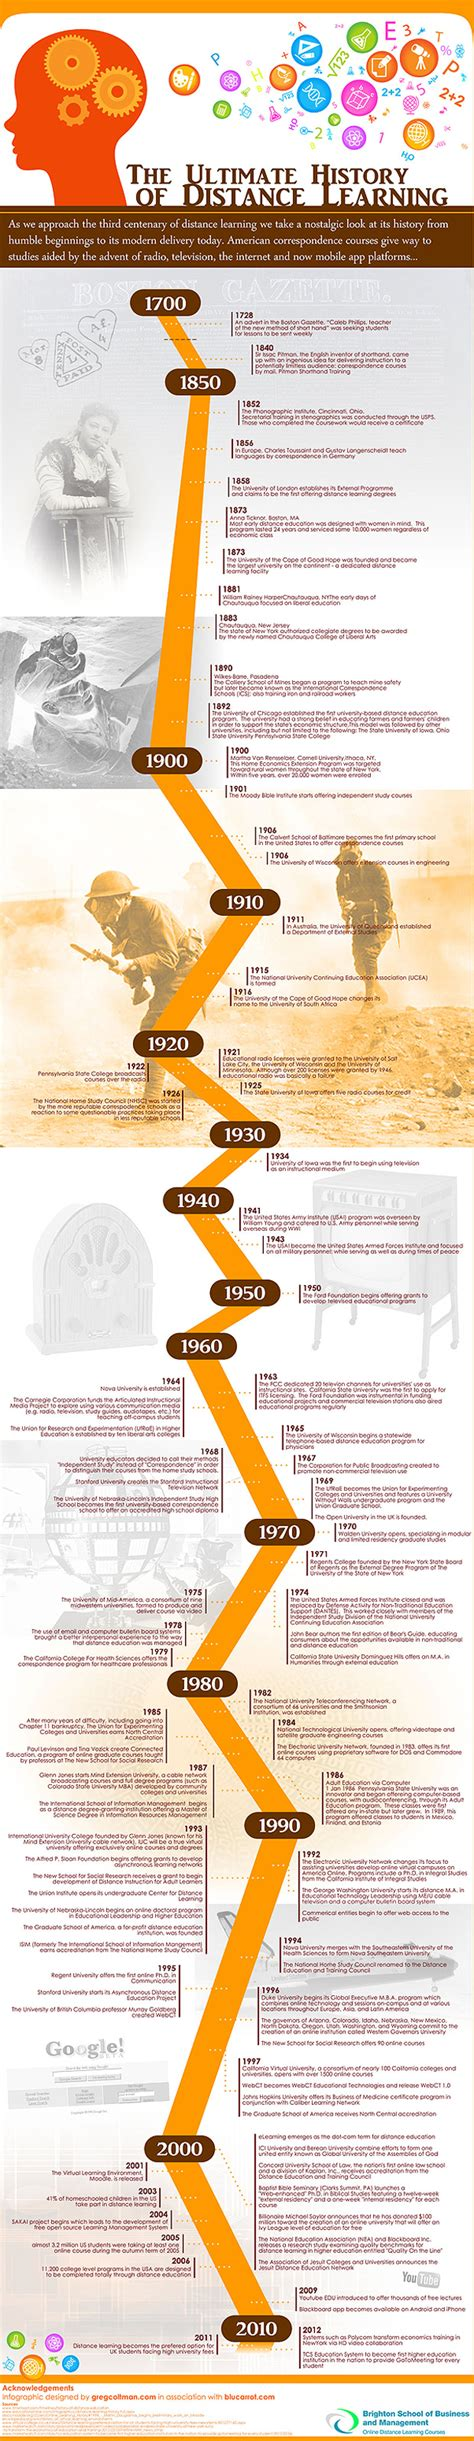 Duke Mba Application Timeline by The History Of Distance Learning Infographic Zdnet